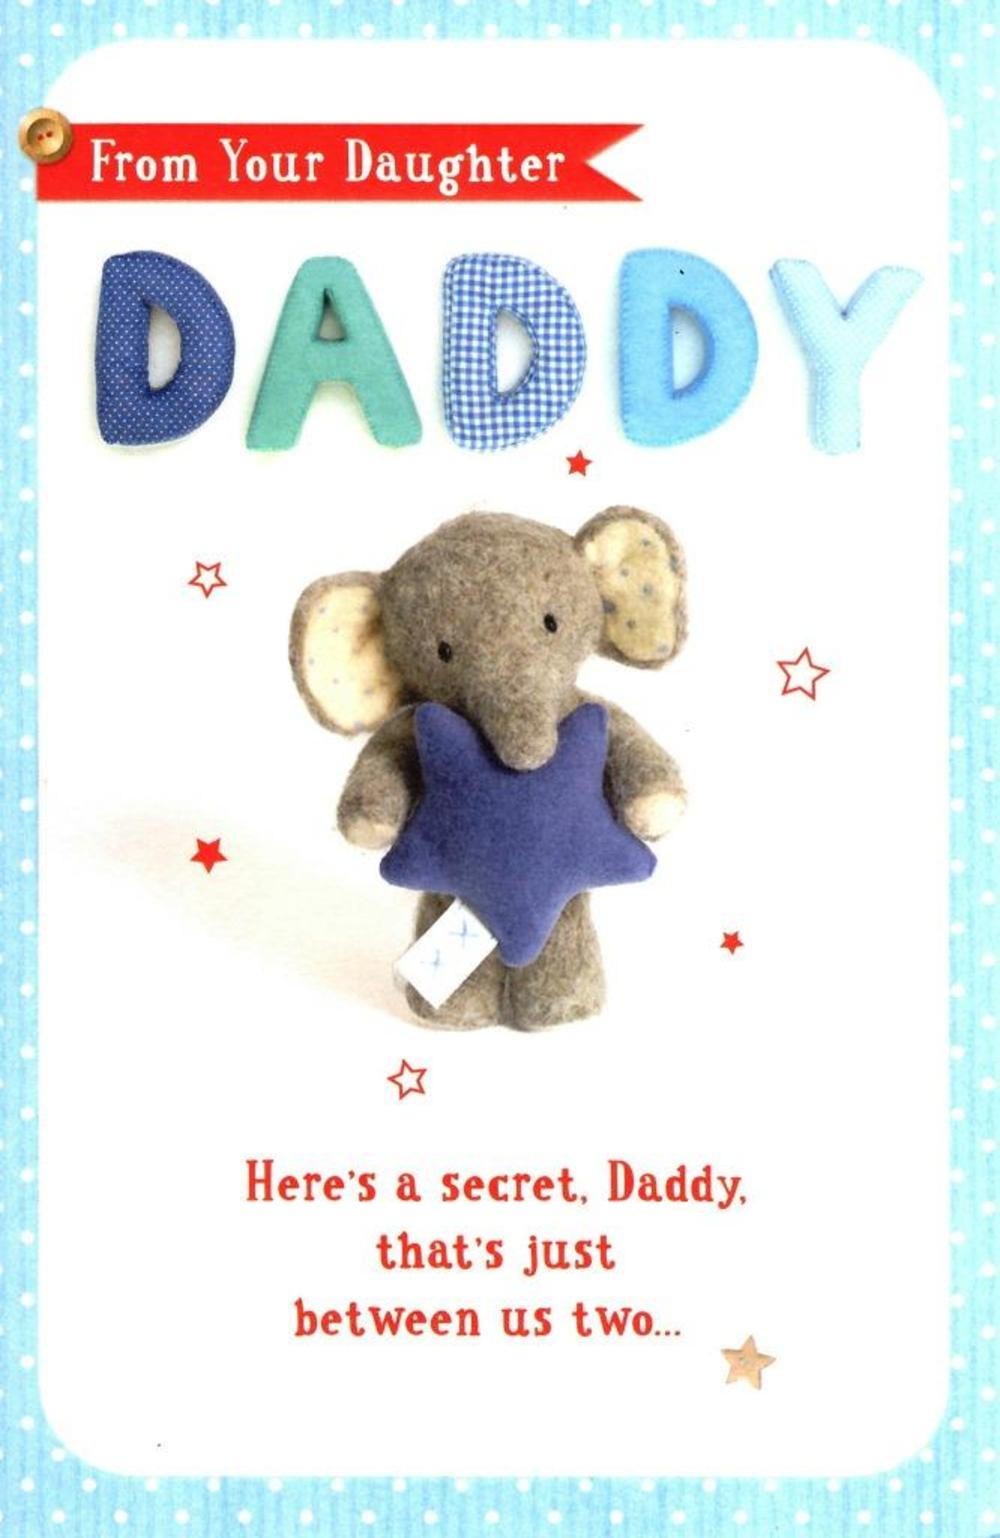 From Daughter Daddy Elliot & Buttons Father's Day Card